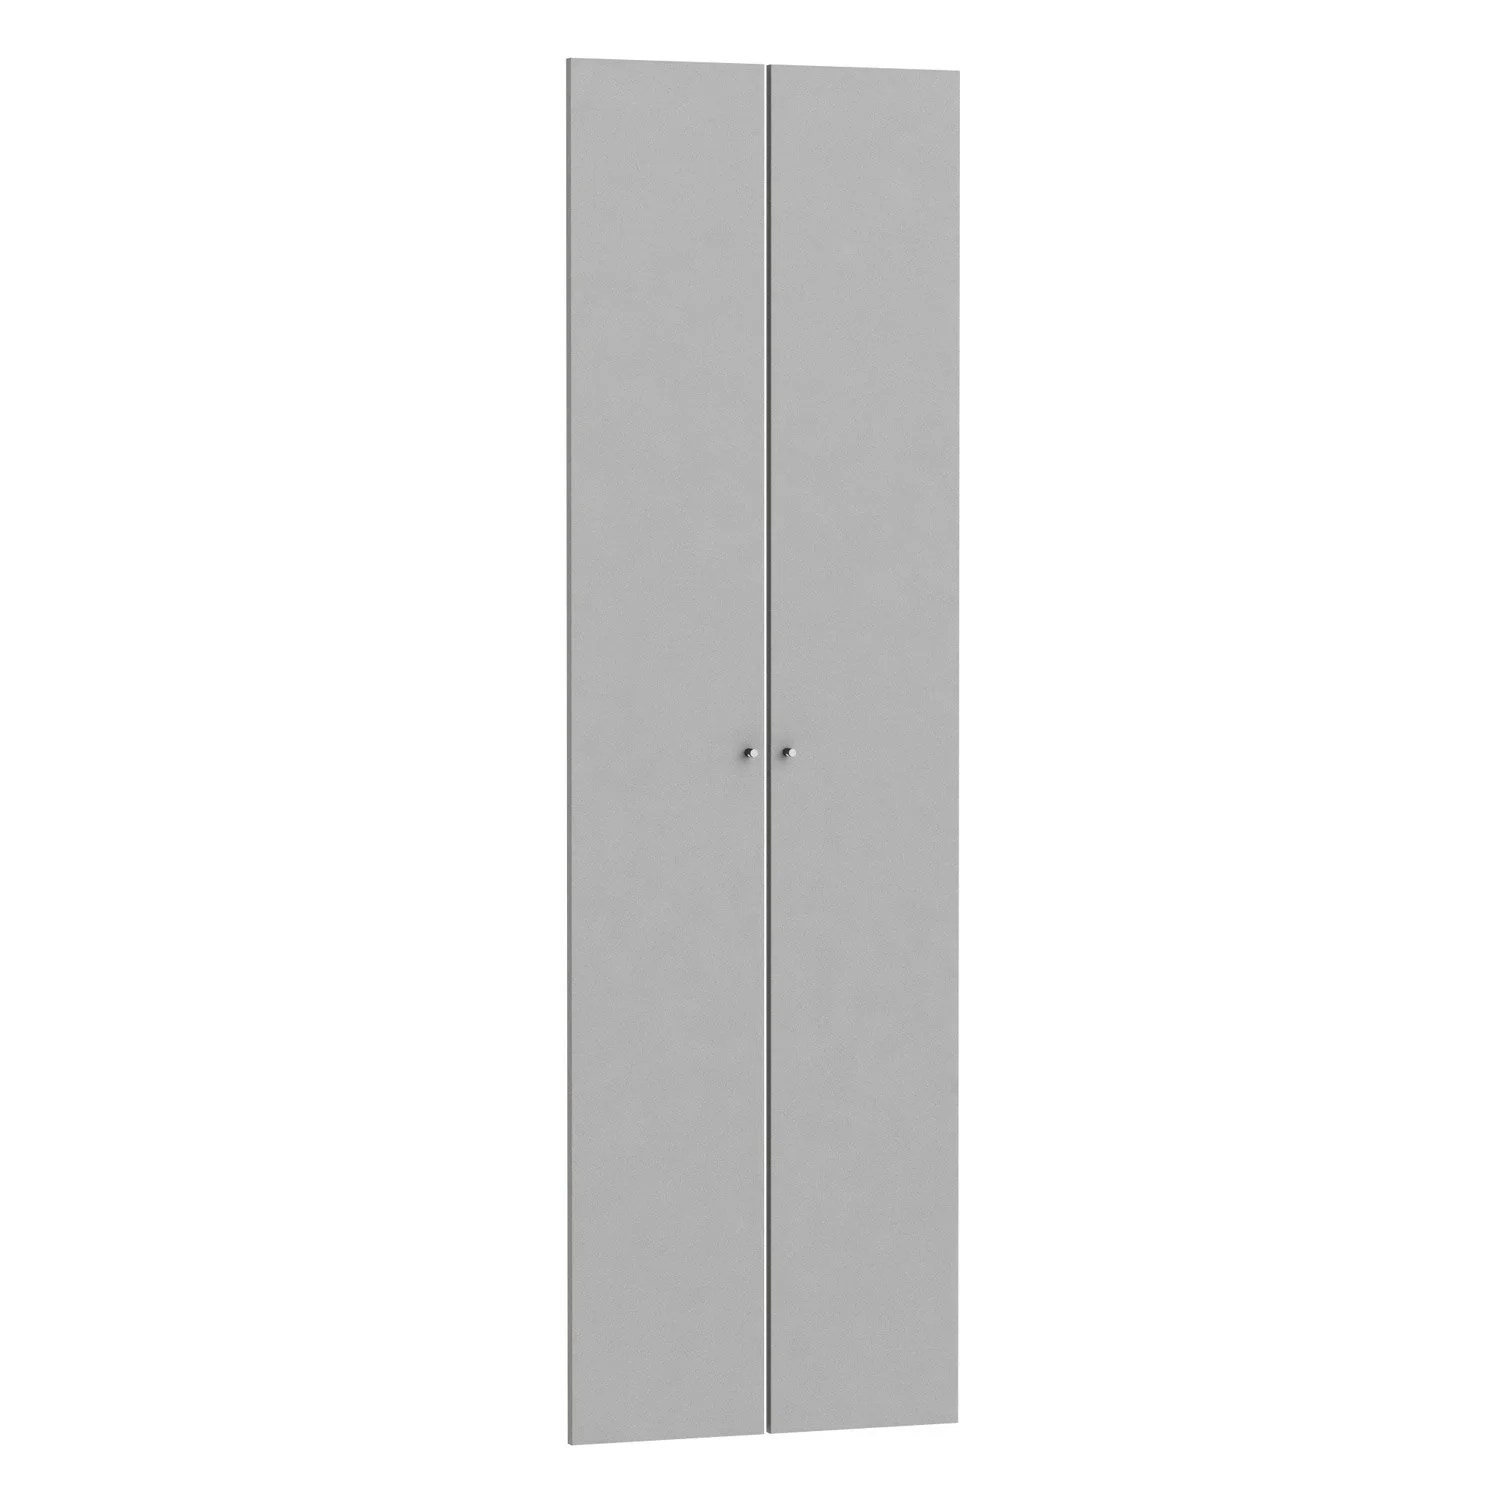 Porte De Placard 60 Cm De Large Lot De 2 Portes Battantes Spaceo Home 200 X 30 X 1 6 Cm Anthracite